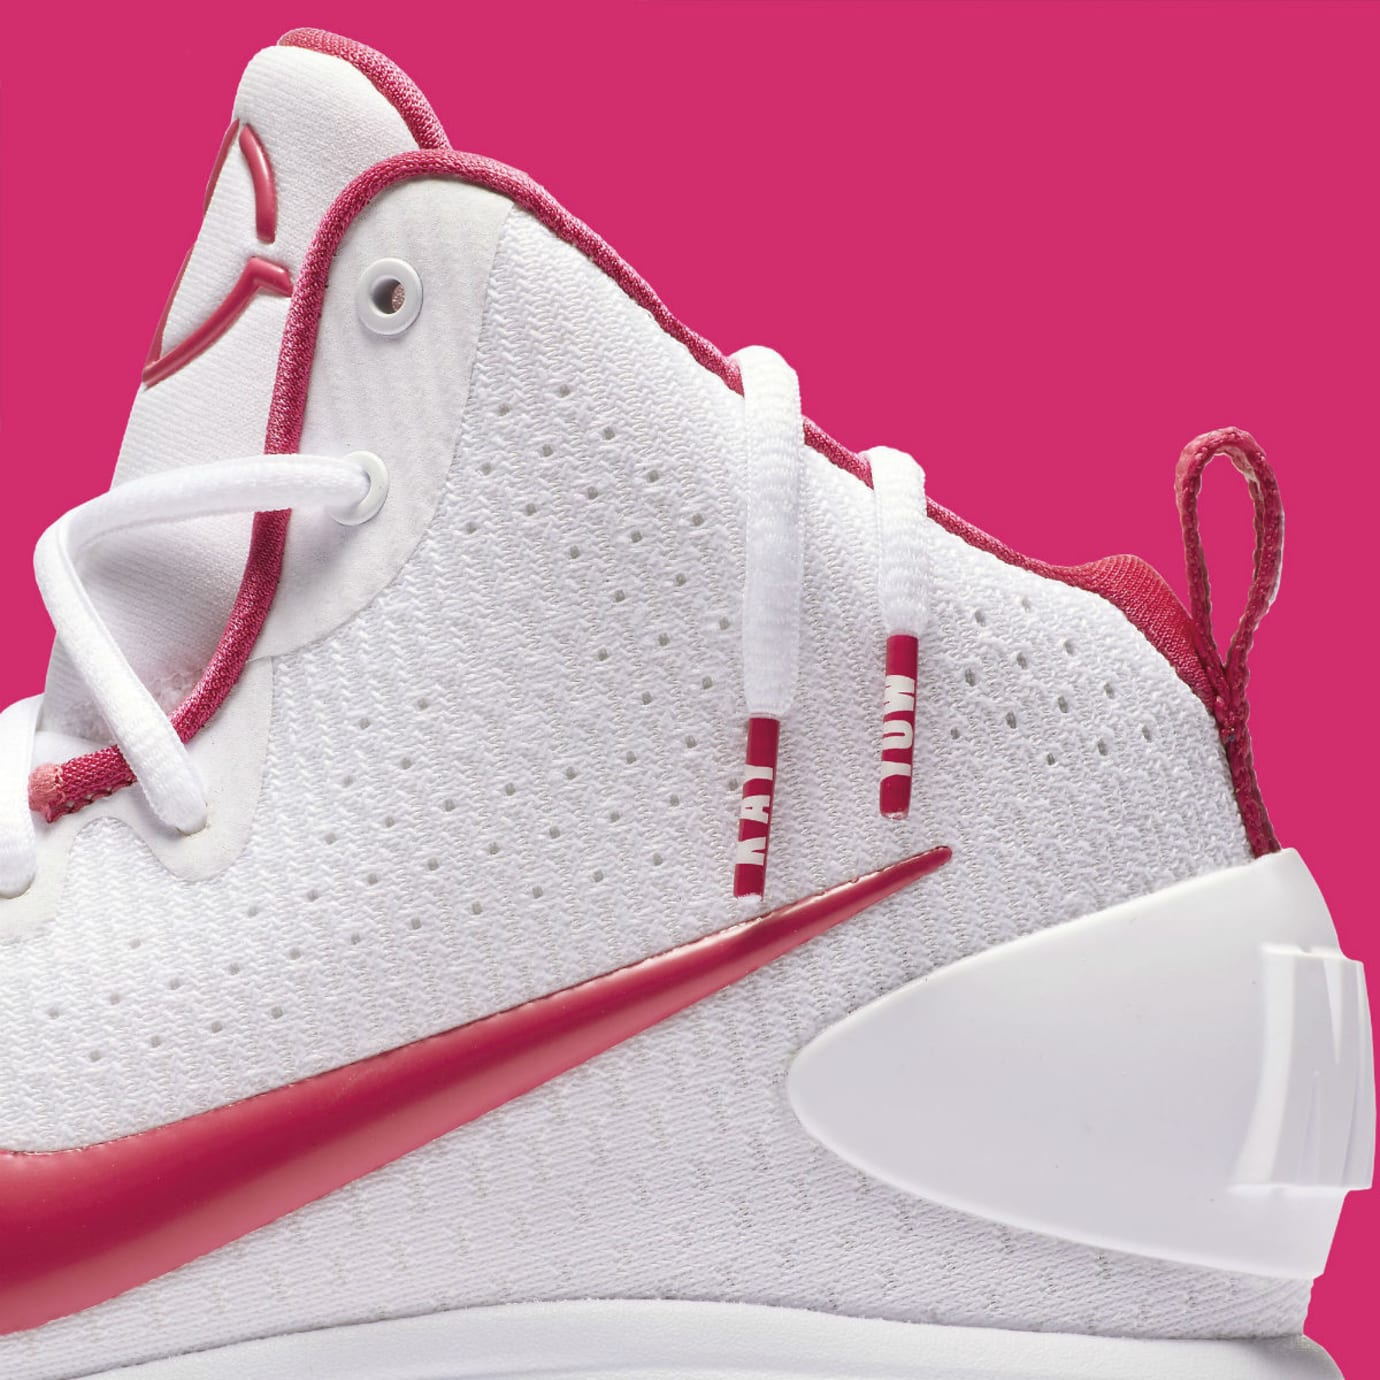 timeless design 513ff 135c8 Nike Hyperdunk 2017 Kay Yow Think Pink Release Date Laces 897631-100